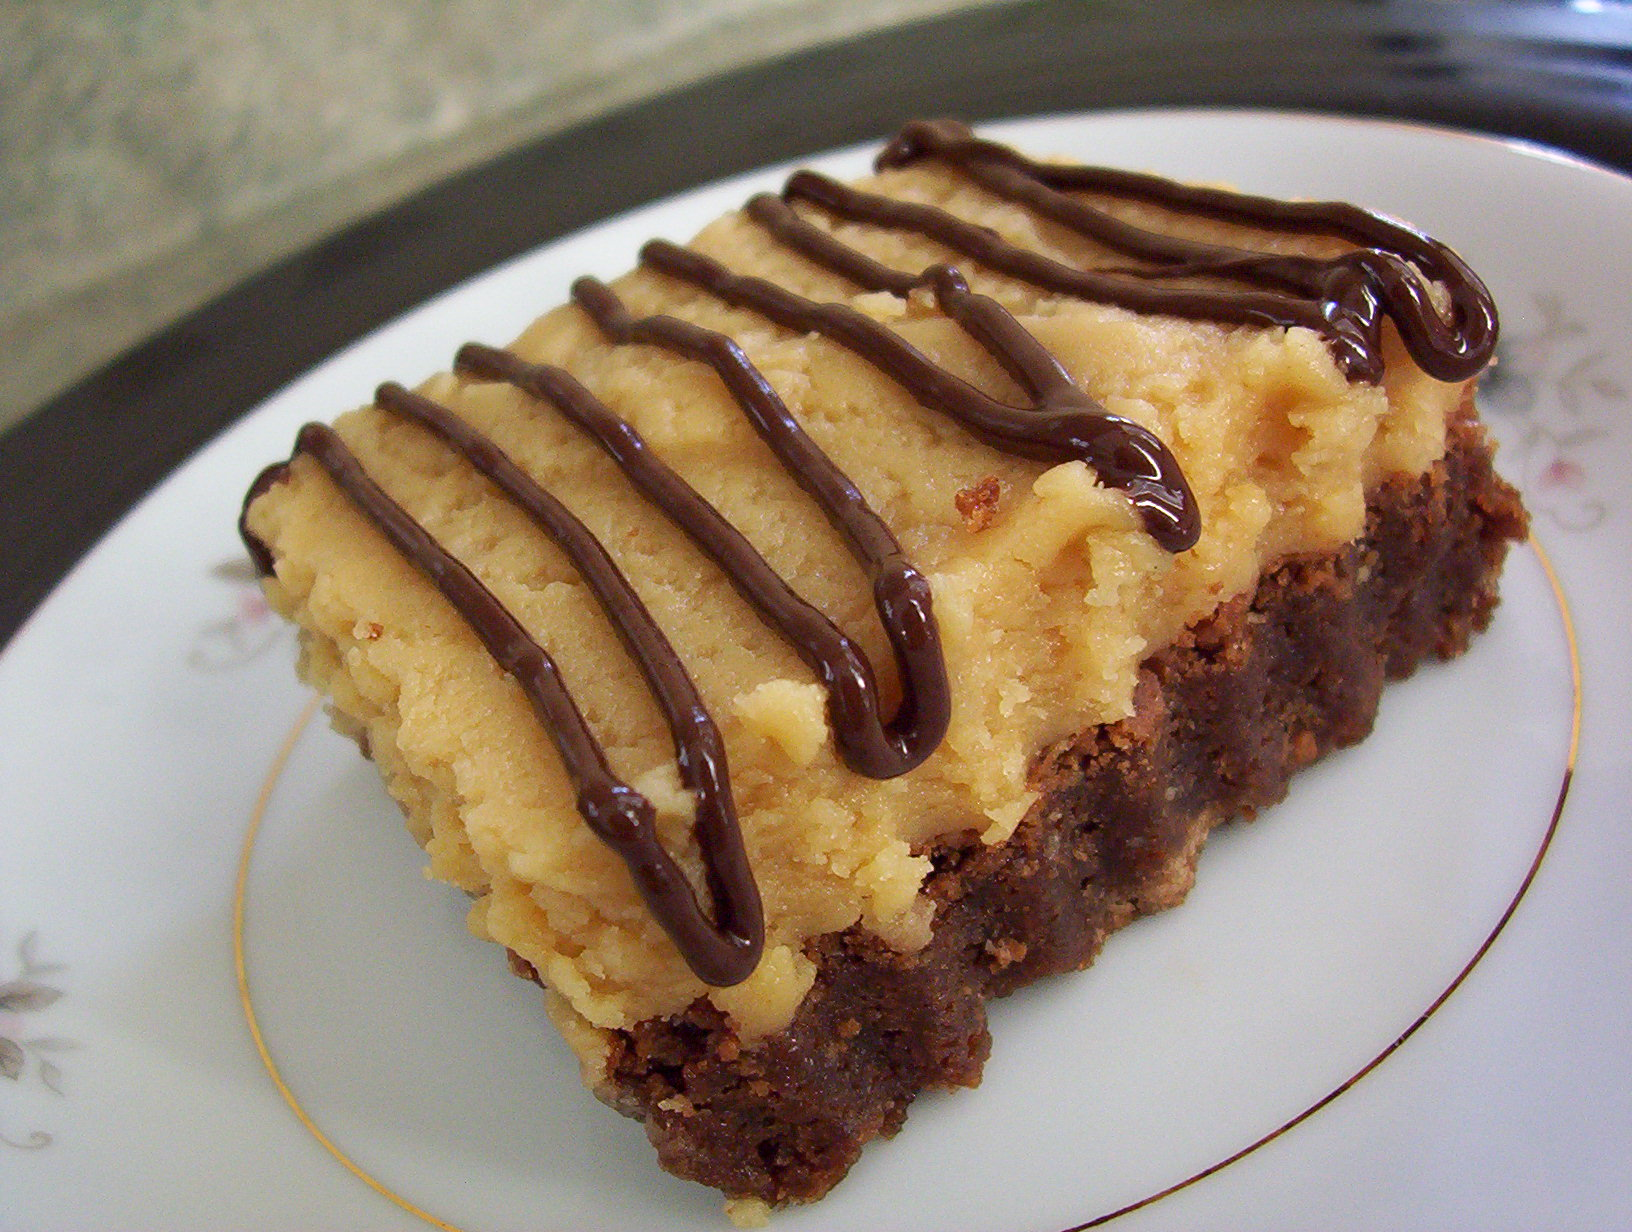 Super Peanut Butter Filled Brownies